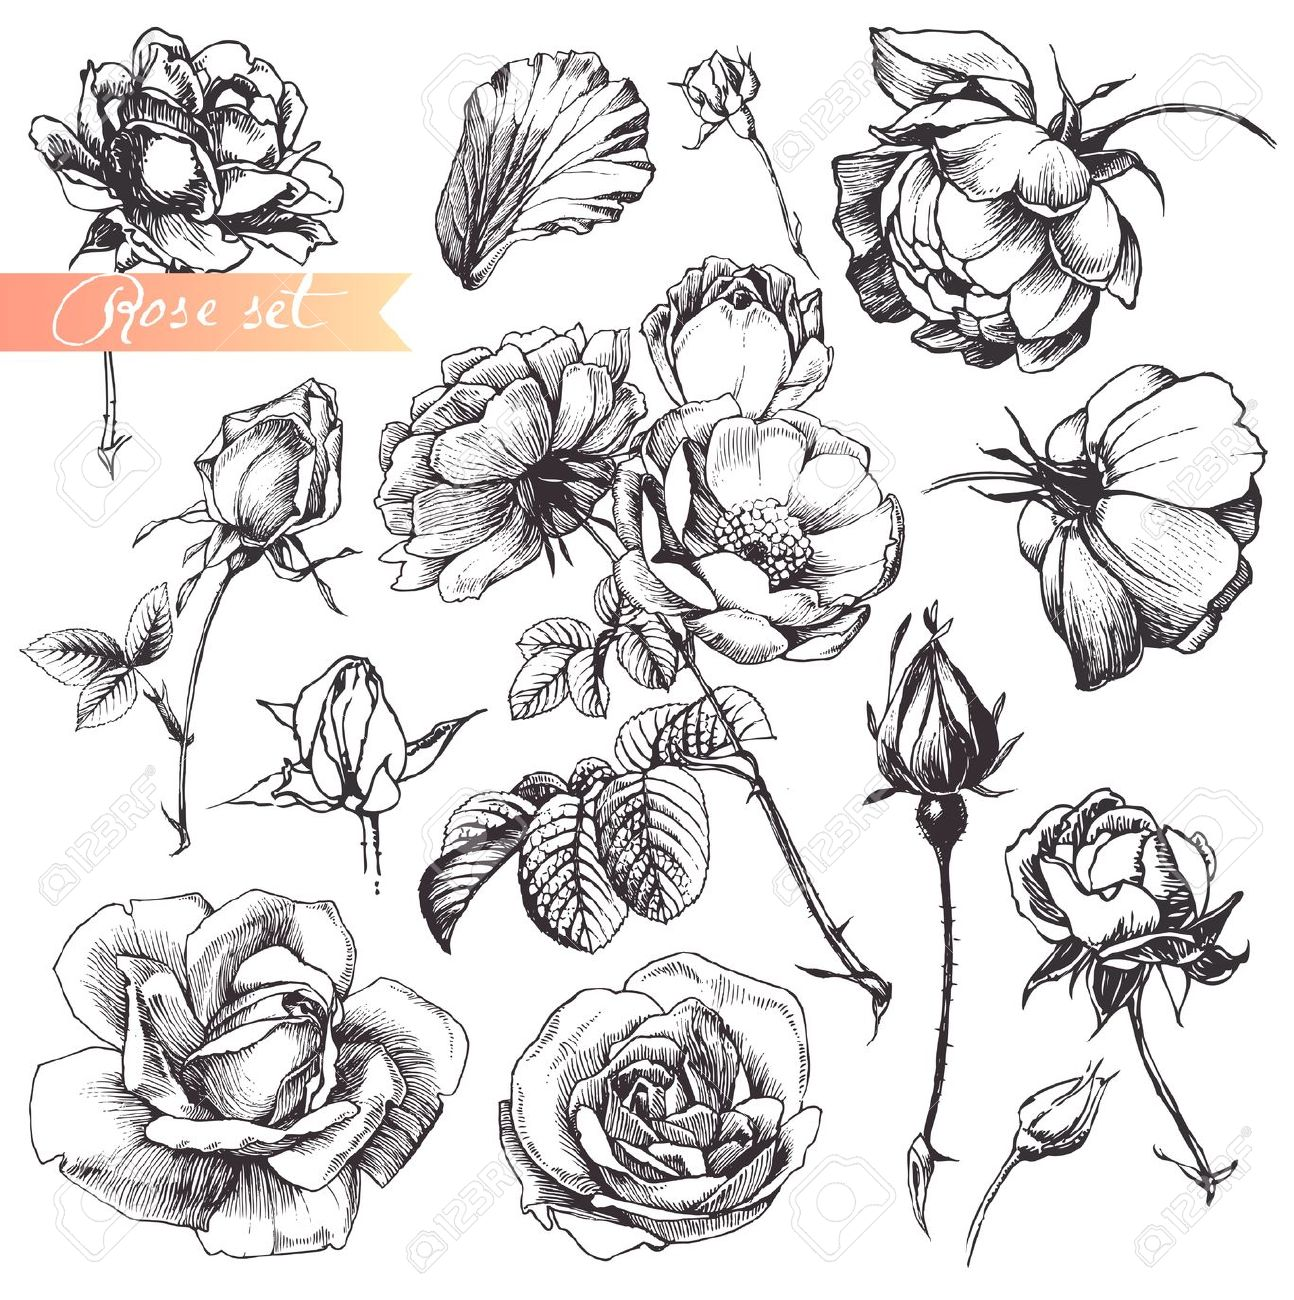 Drawn rose plant Detailed And Set: Flower Set: